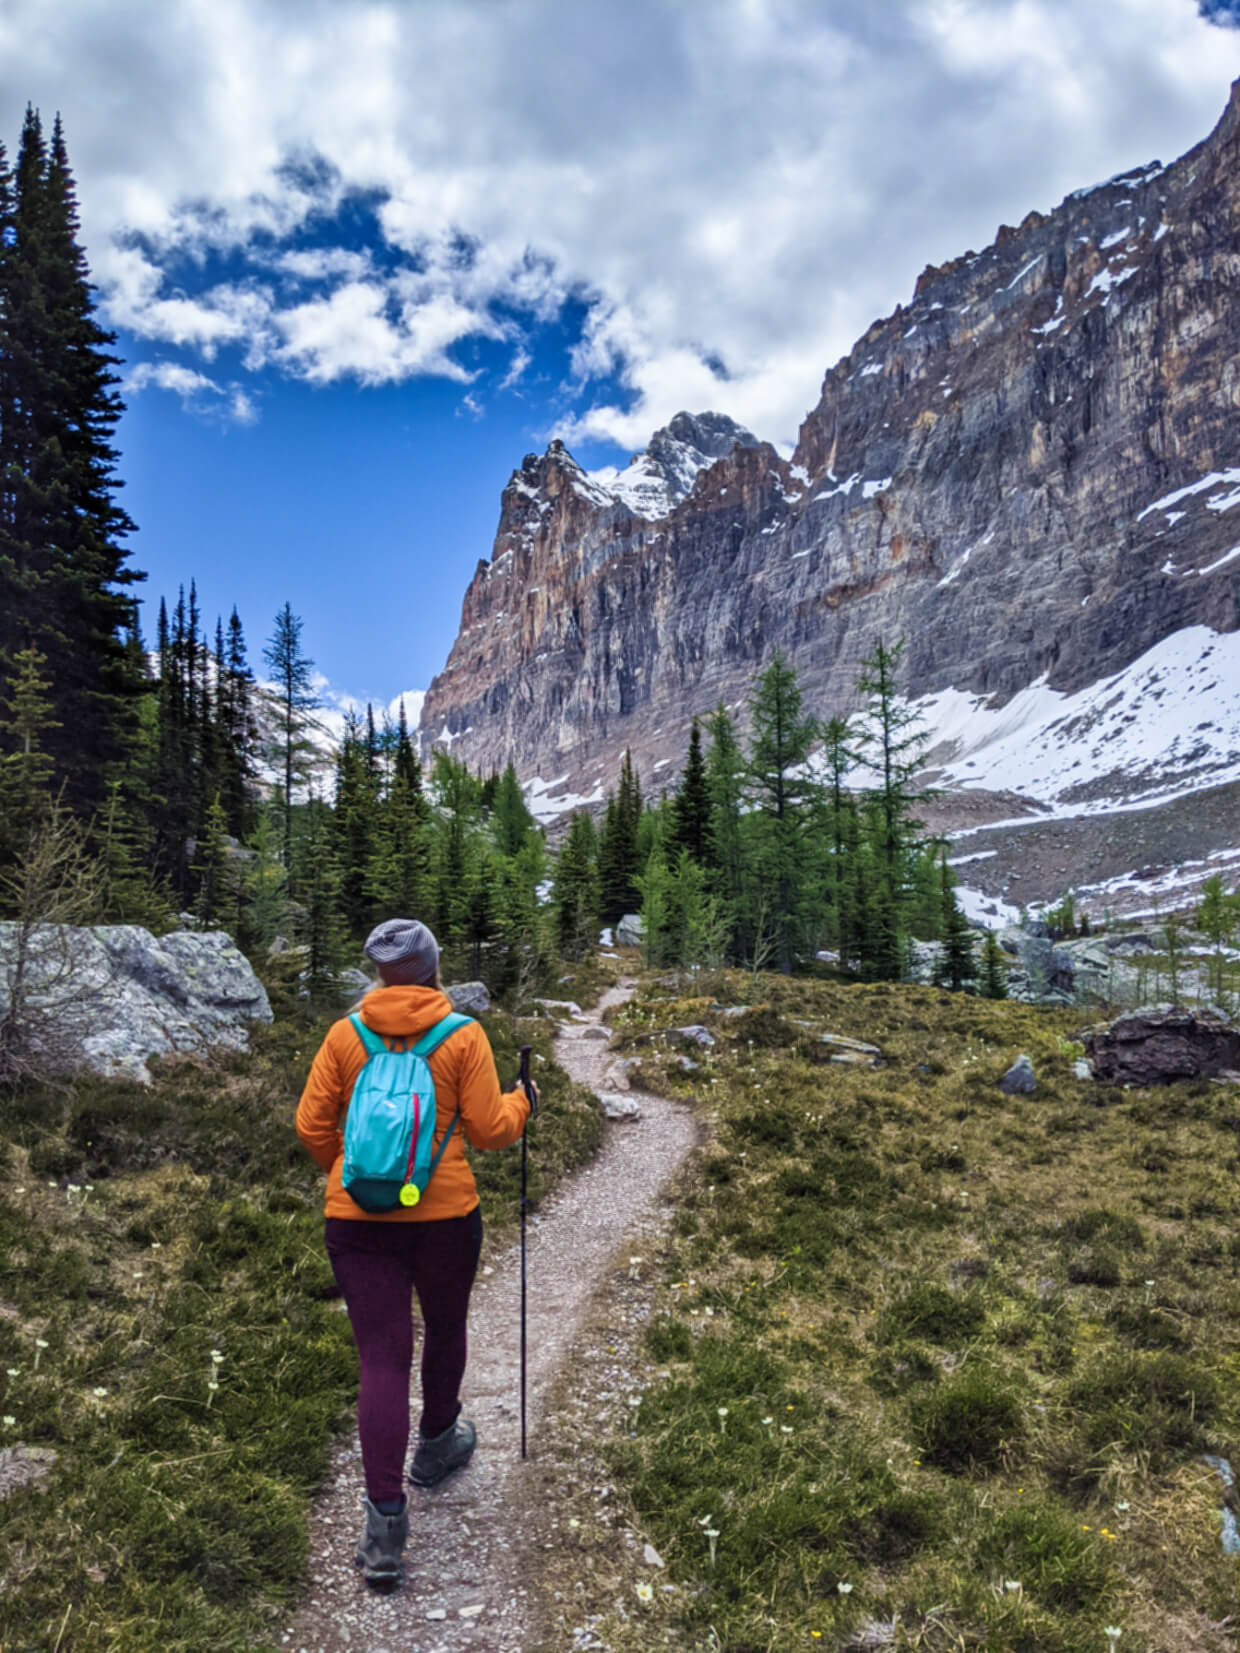 Gemma hiking in an orange jacket and with a hiking pole on a trail near Lake O'Hara, with a wall of mountains on right side